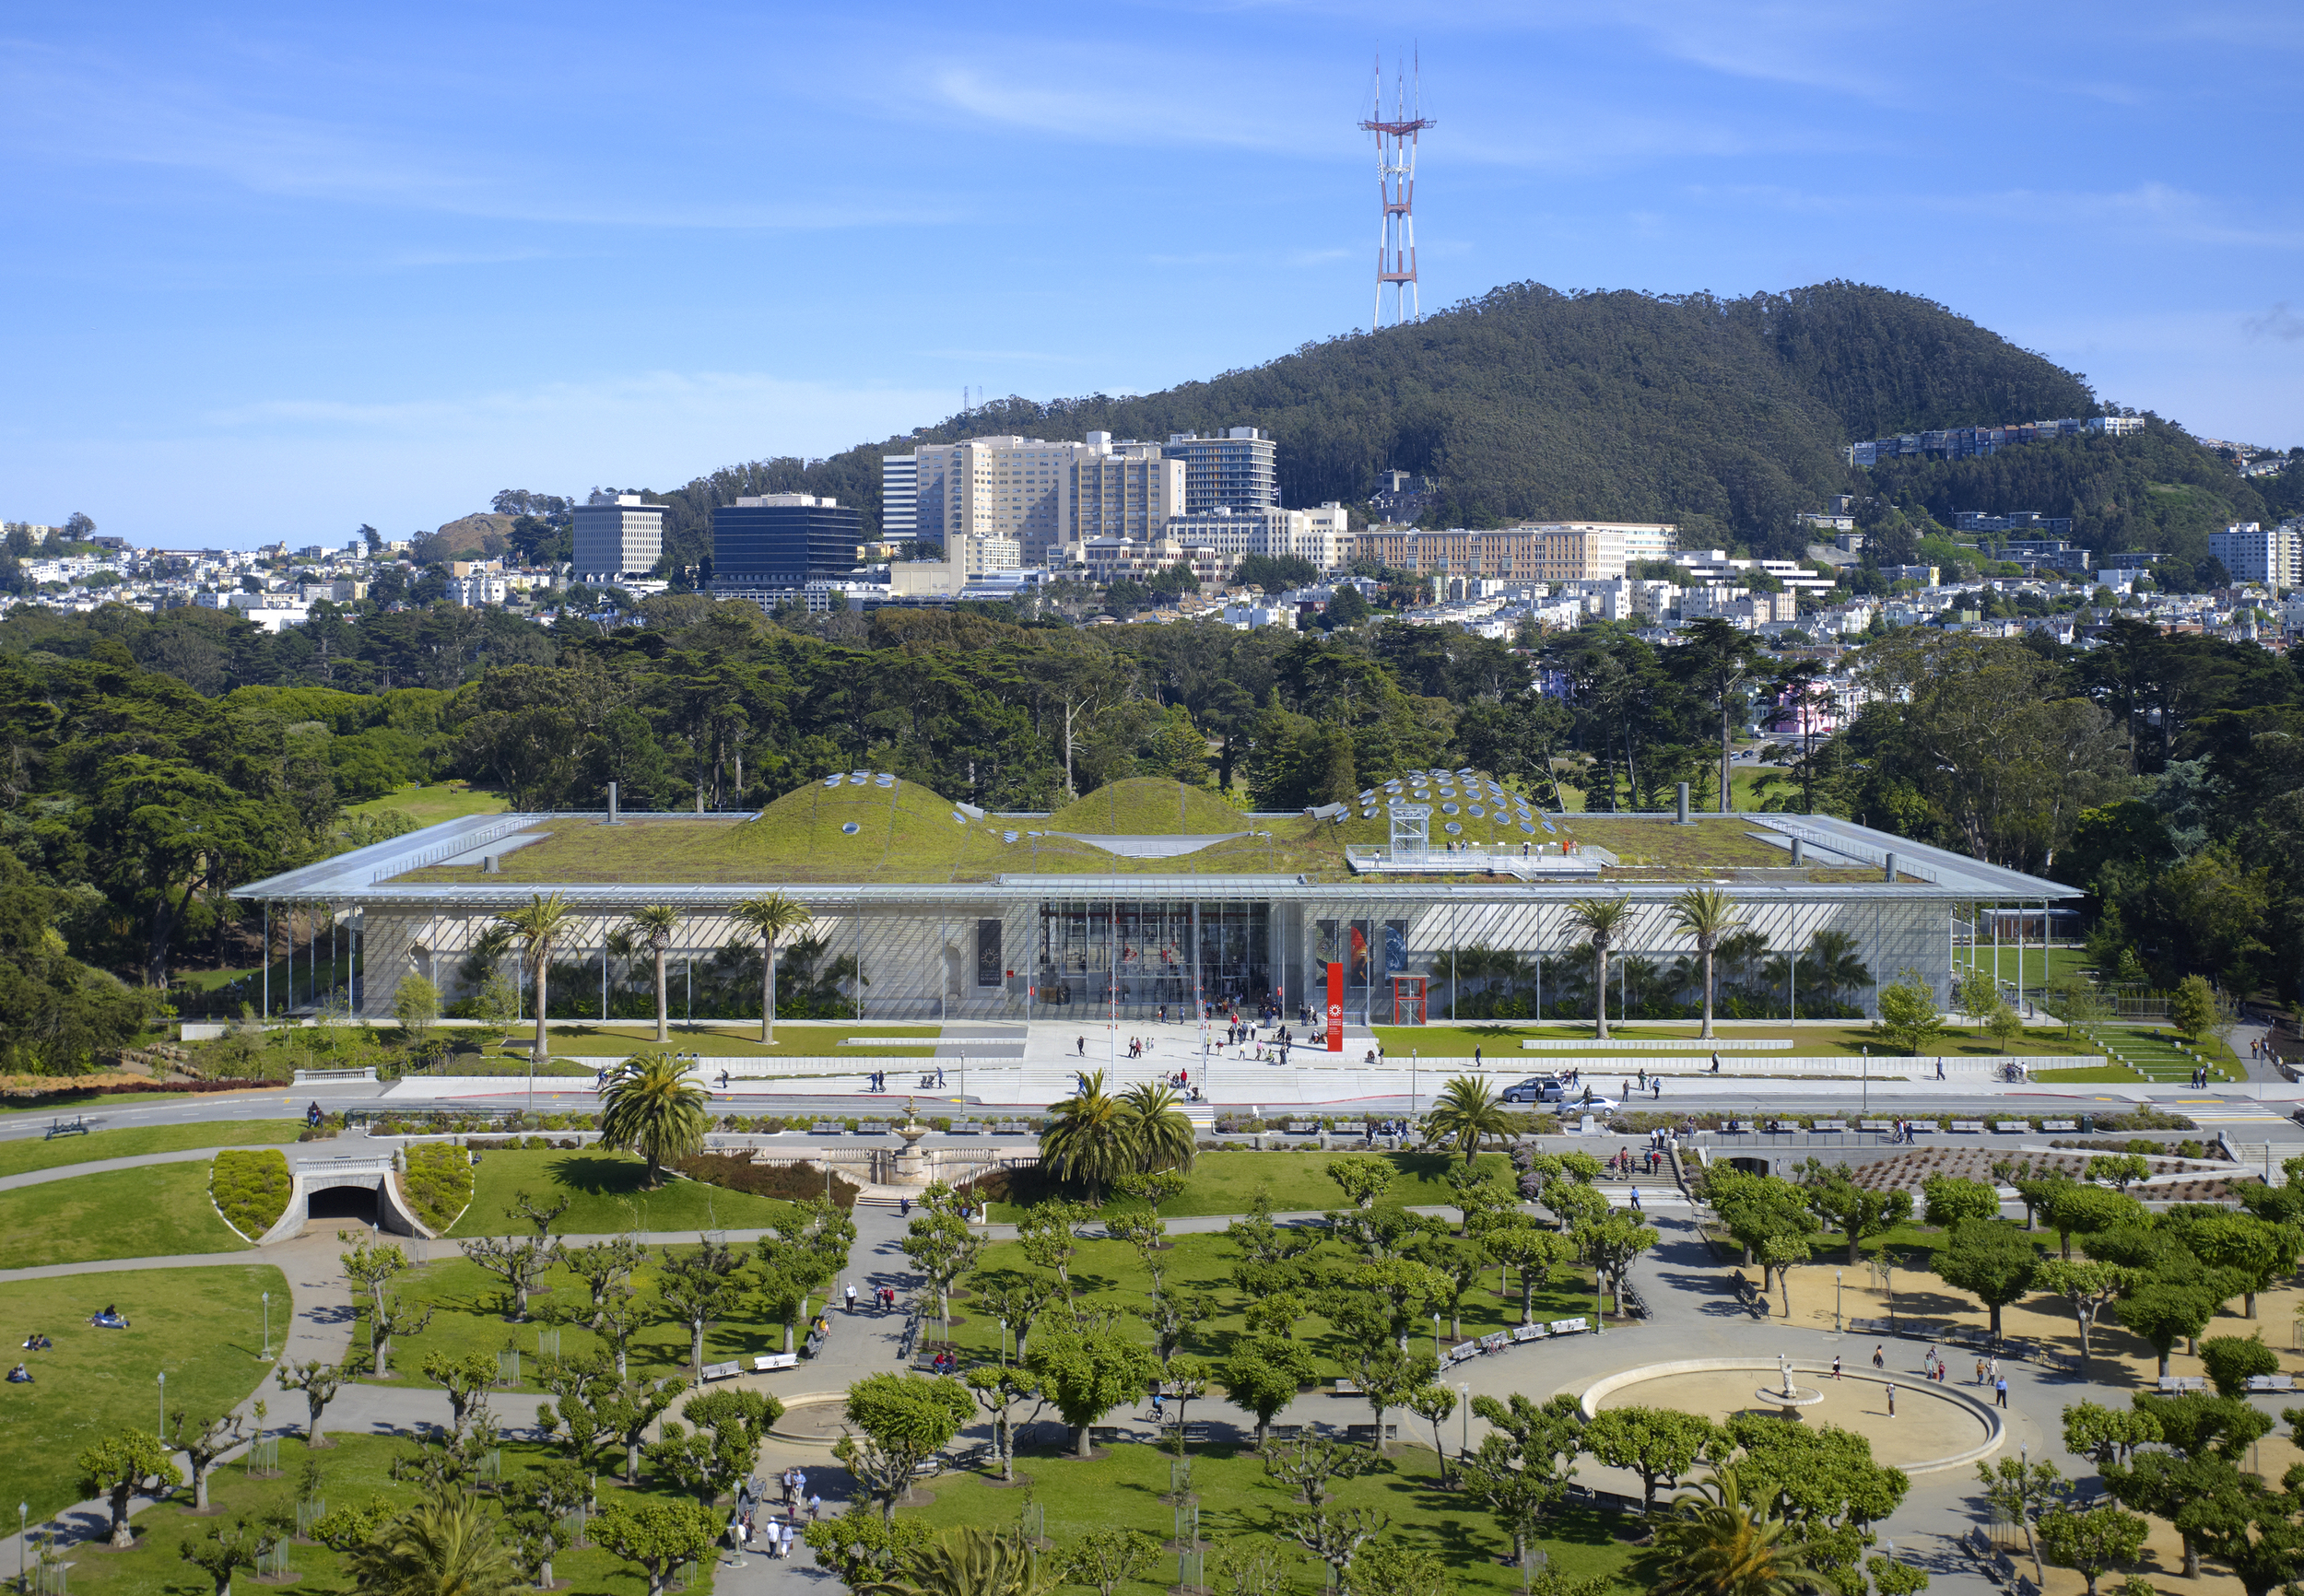 The California Academy of Sciences within Golden Gate Park. UCSF and Sutro Tower in the background.  ©Tim Griffith